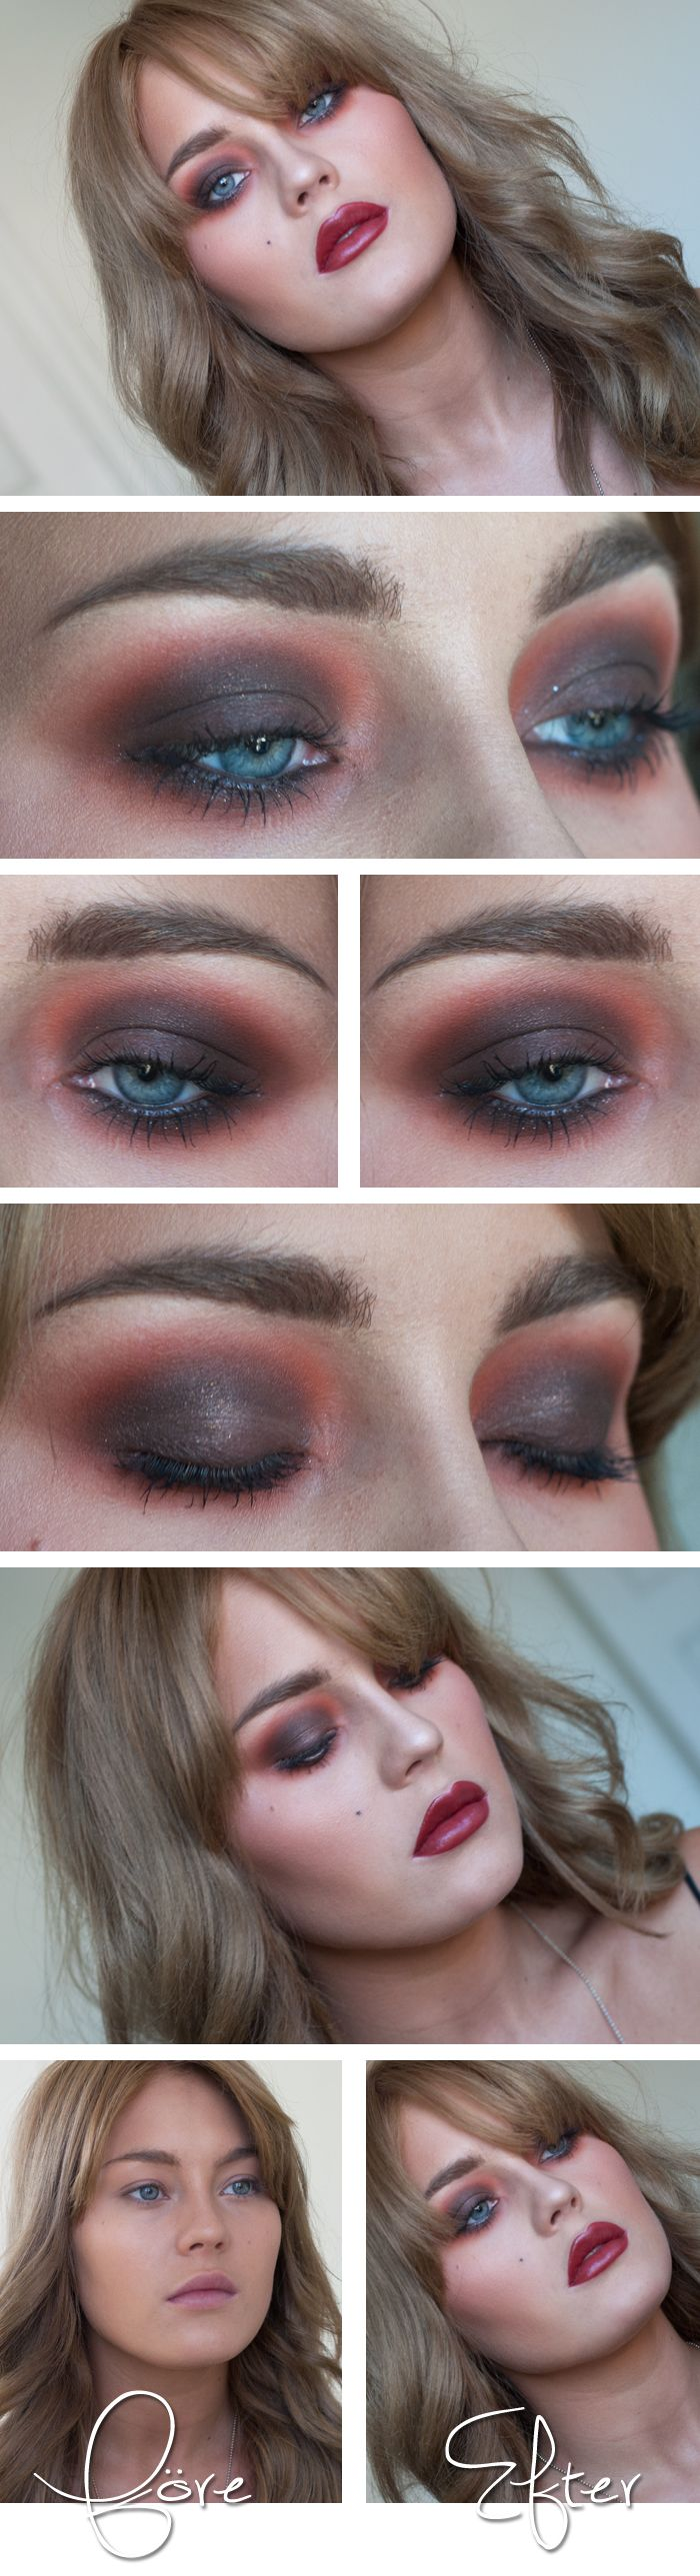 "Today's Look : ""Angelica"" -Linda Hallberg (can you say vampy?! This is a gorgeous look throughout, with red/wine through the eyes, blush and lips.) 08/17/13"